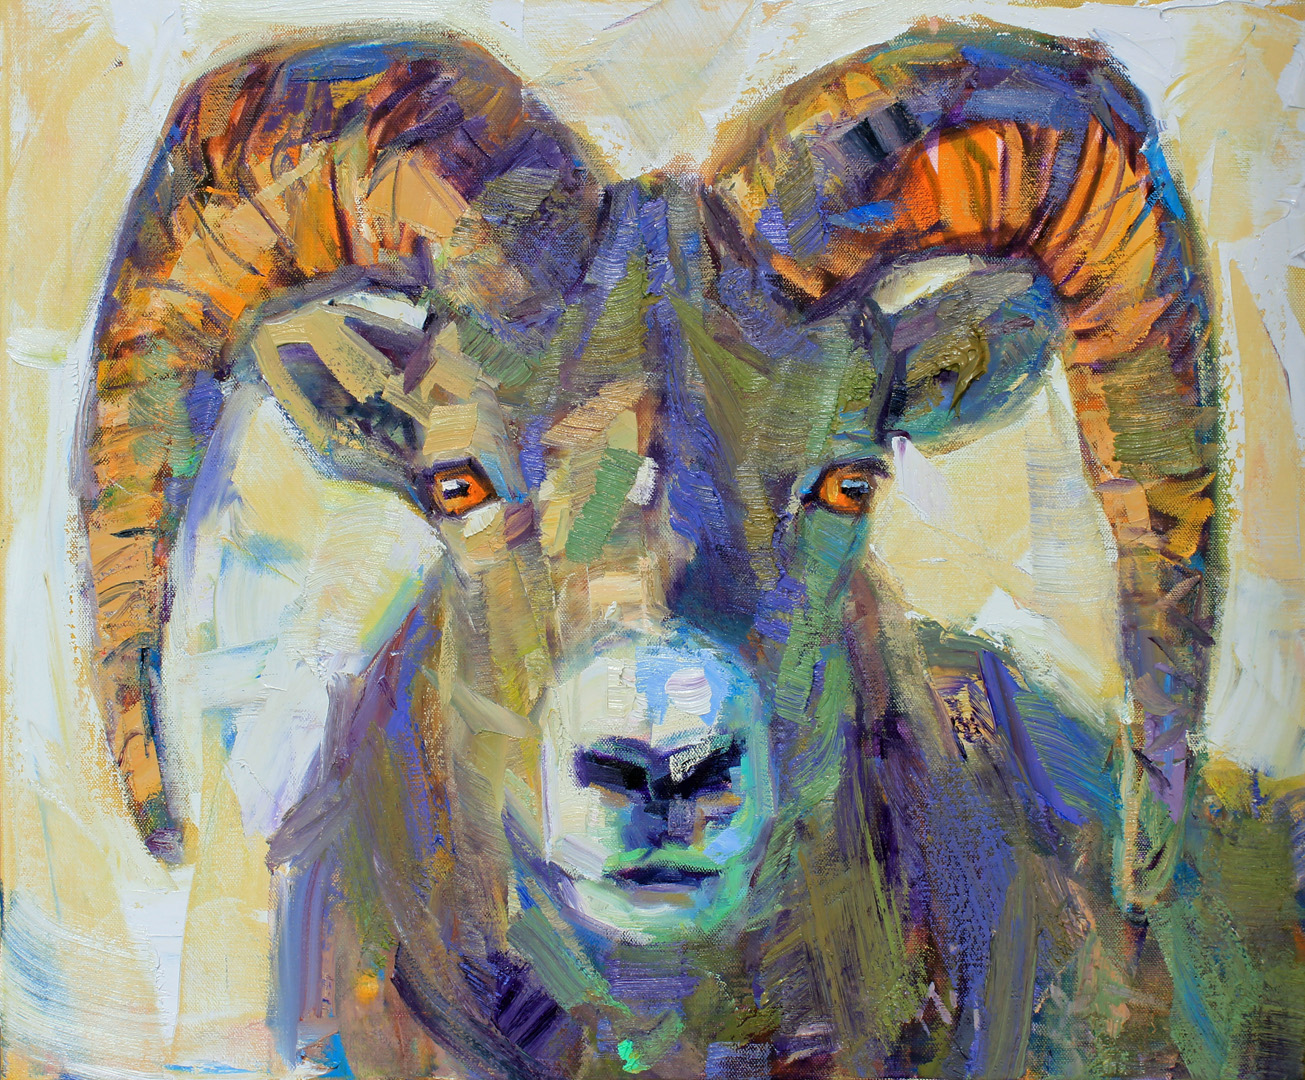 """Ram-ski"", 20x24 inches, oil on canvas"